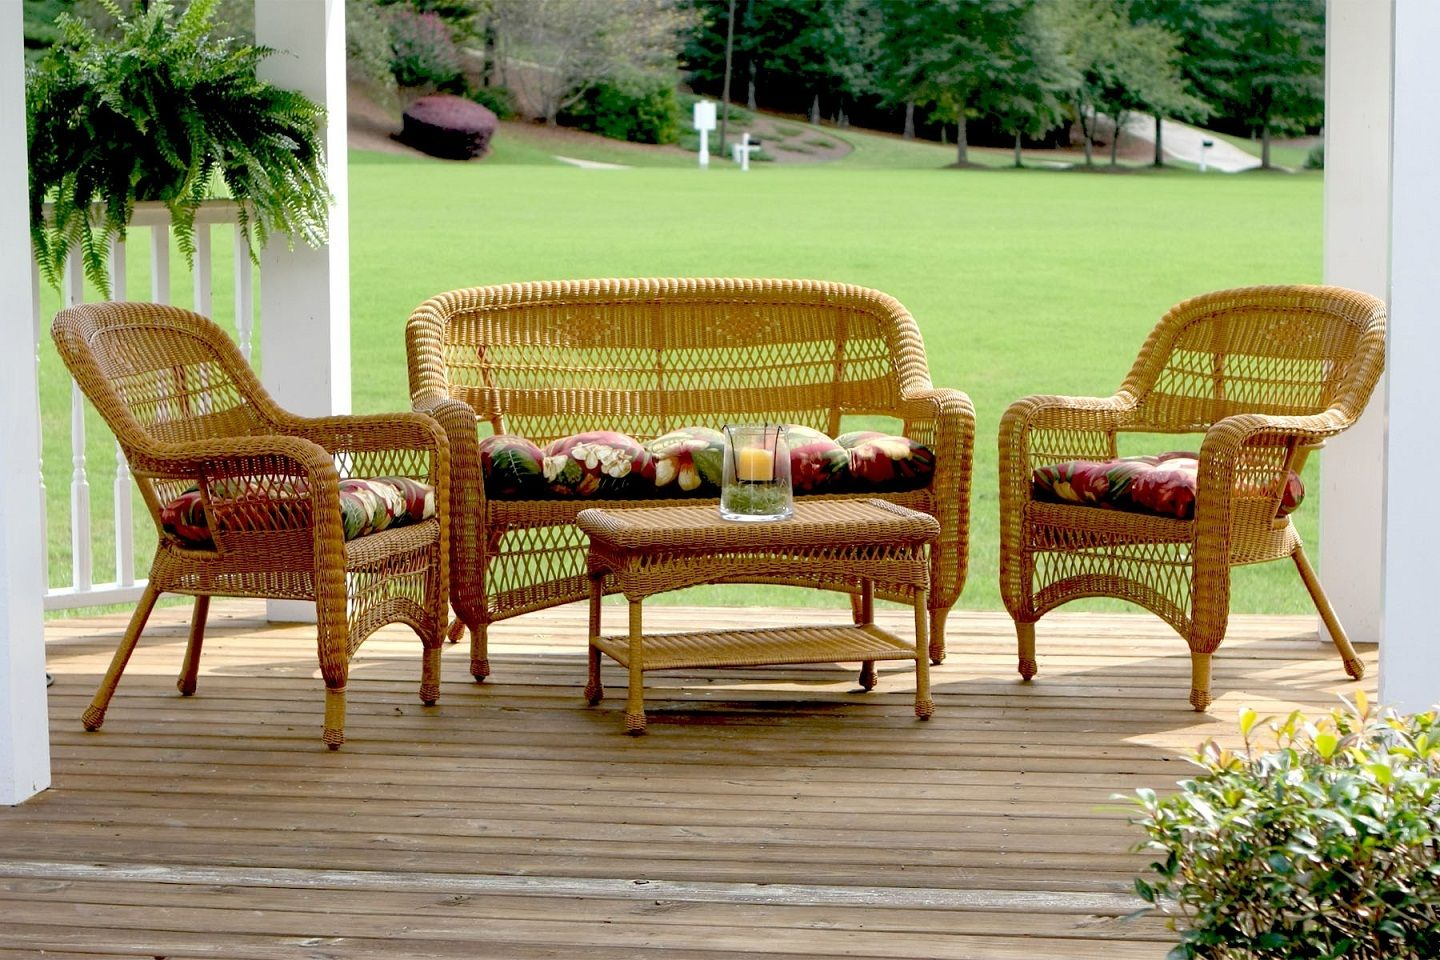 Lowe' Patio Furniture Lowes Home